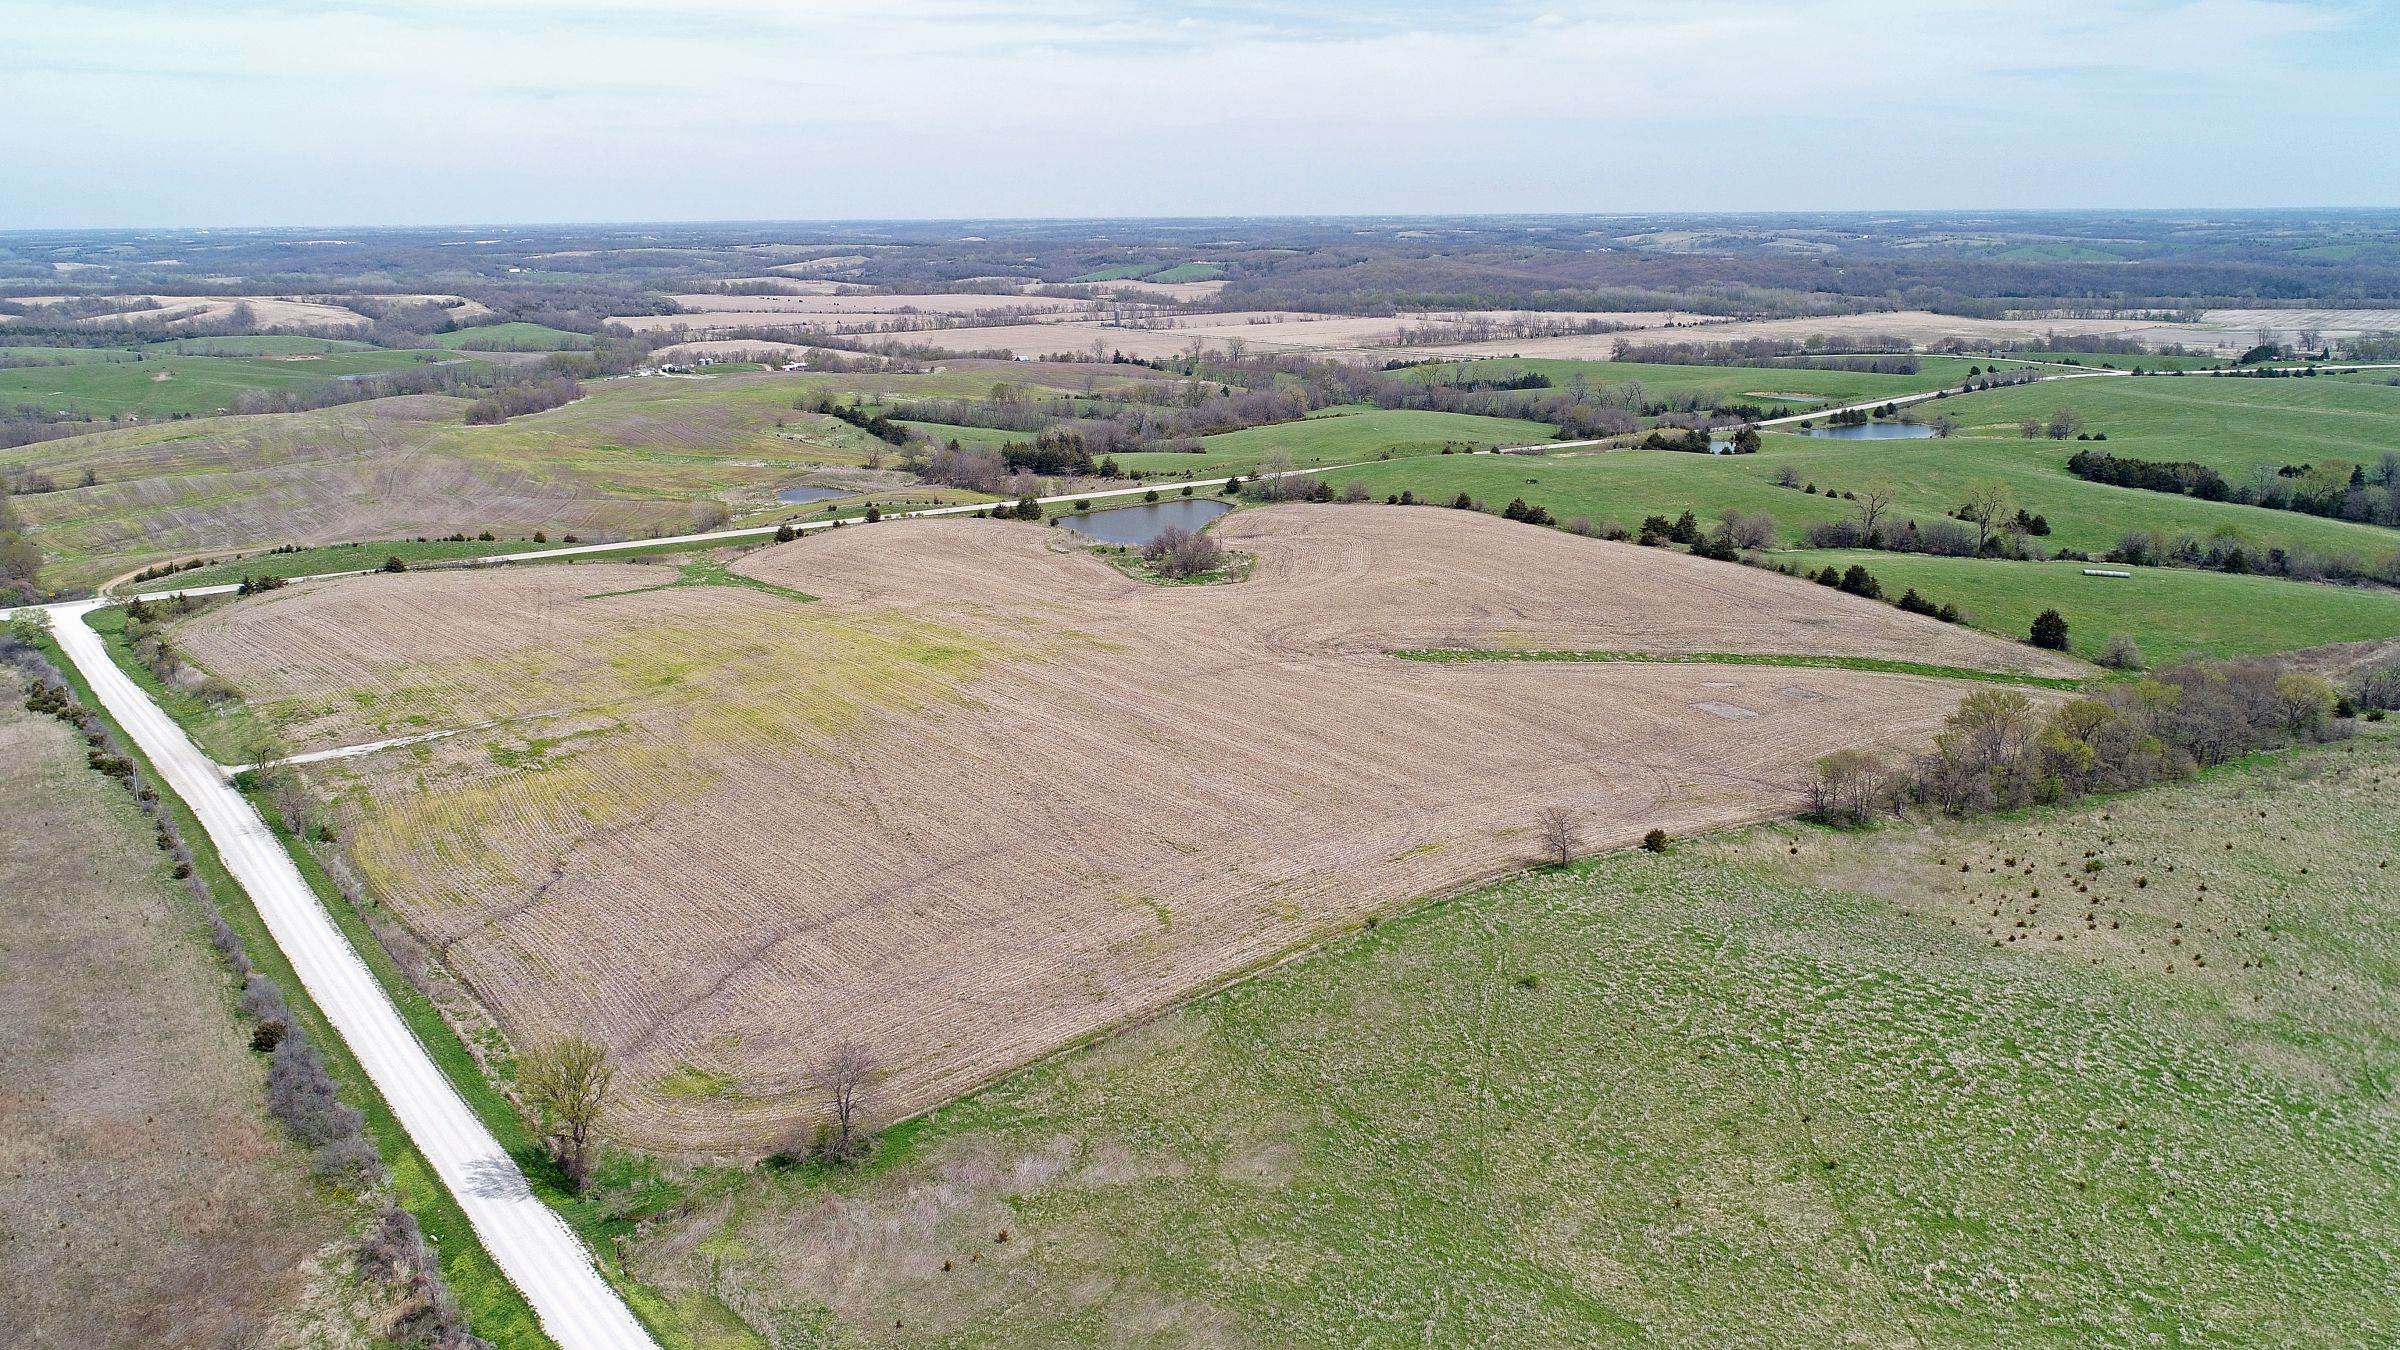 land-decatur-county-iowa-39-acres-listing-number-15495-0-2021-04-27-215002.JPG